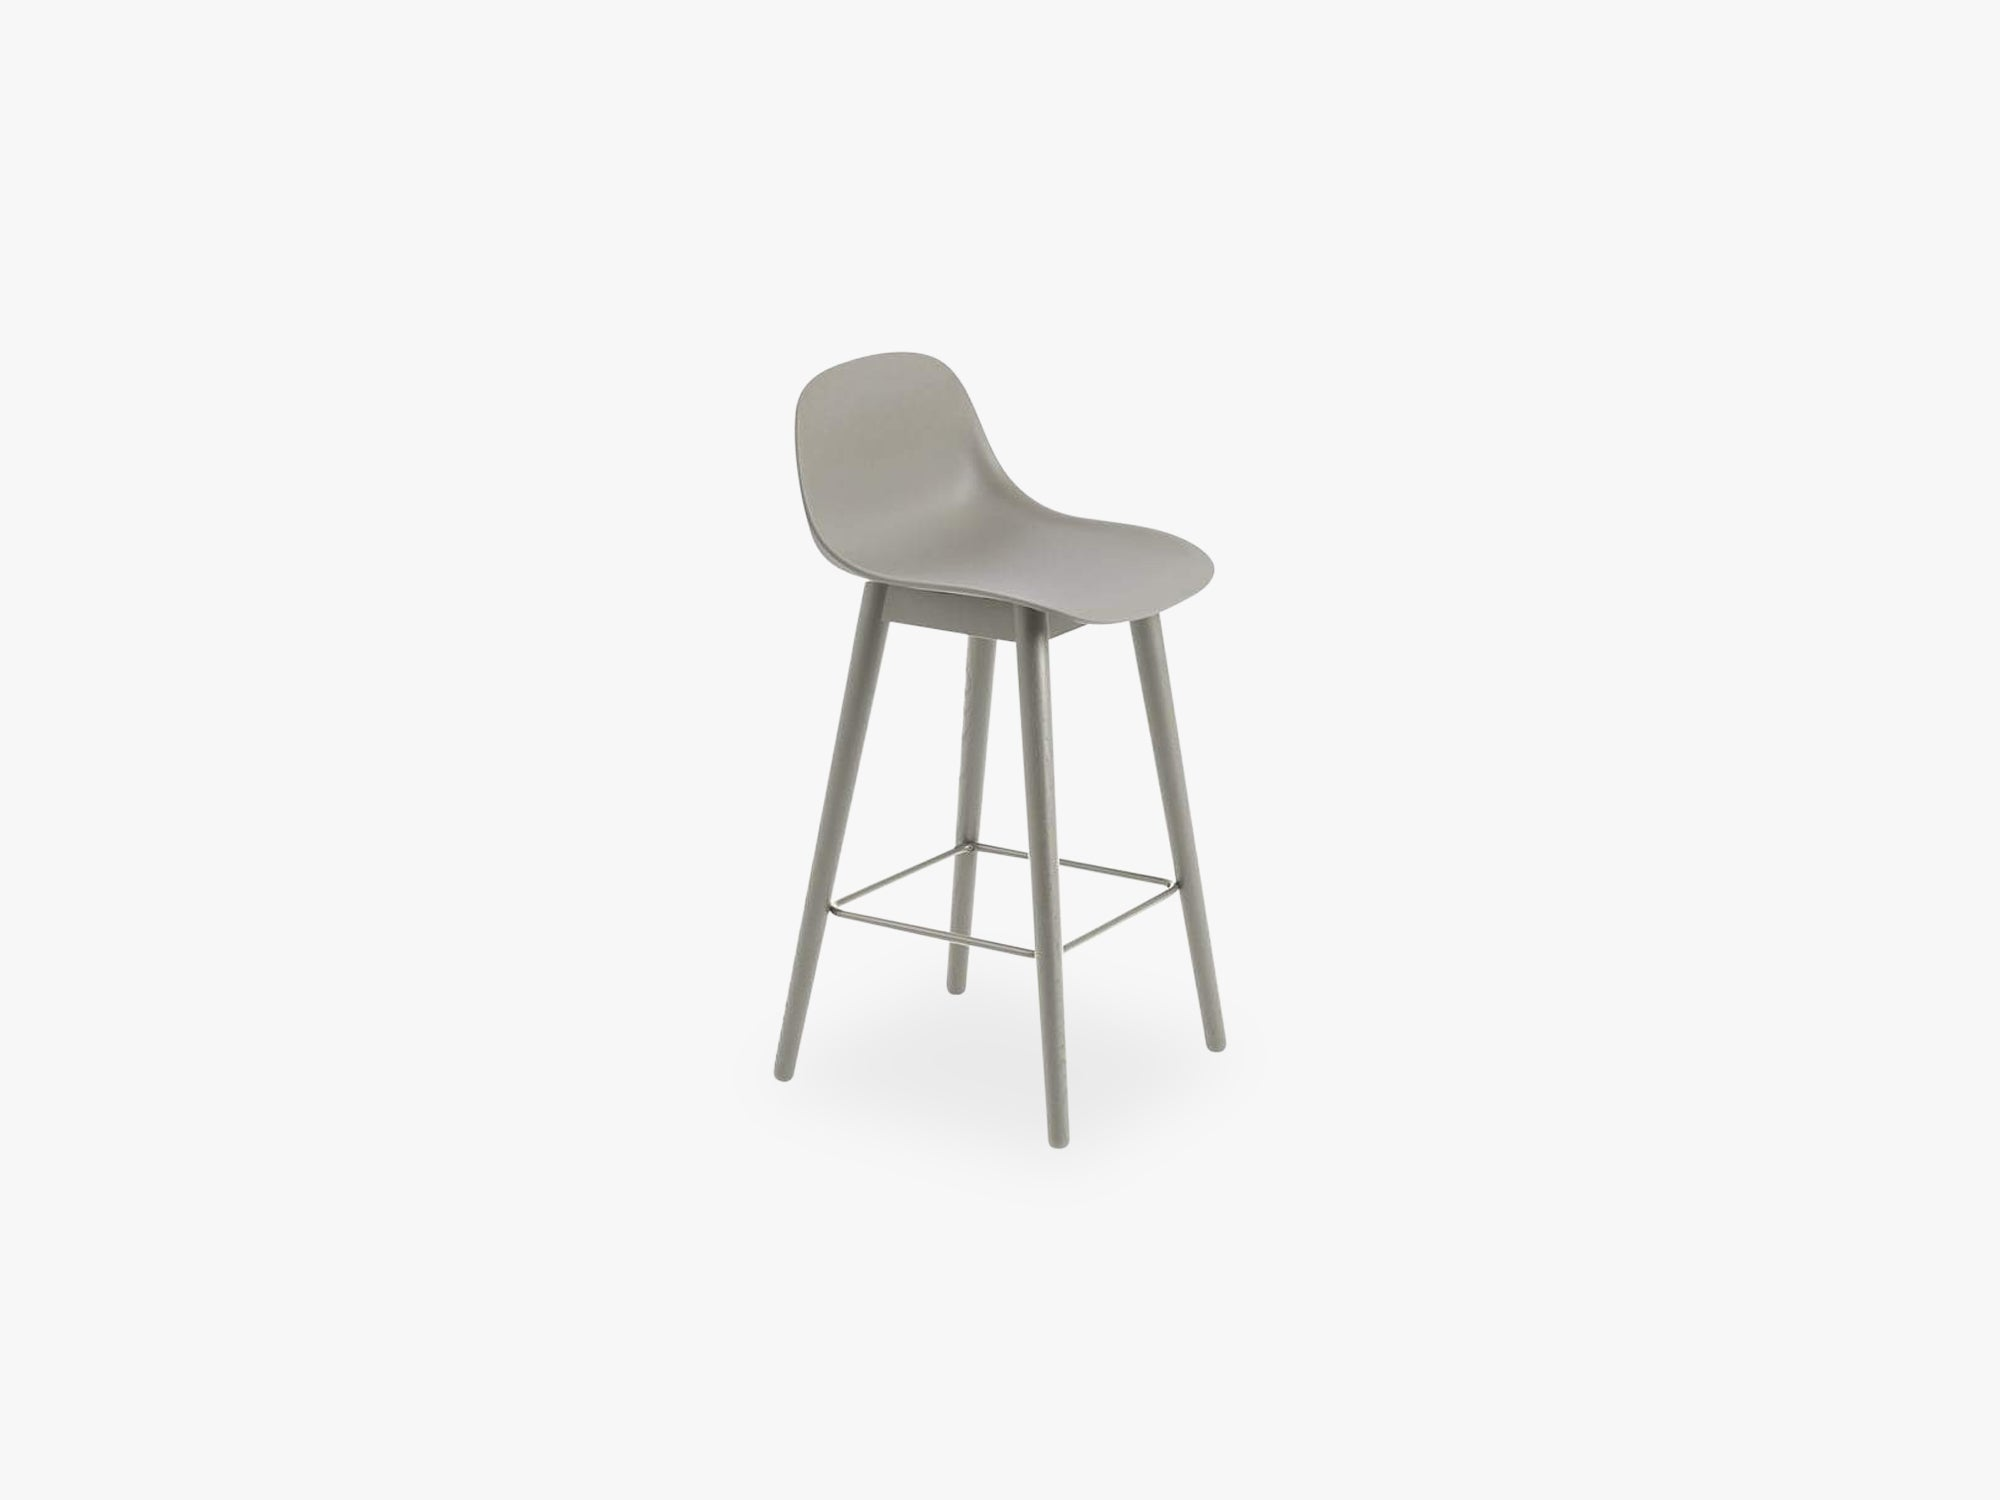 Fiber Bar Stool W Backrest - Wood Base H: 65 Cm, Grey/Grey fra Muuto